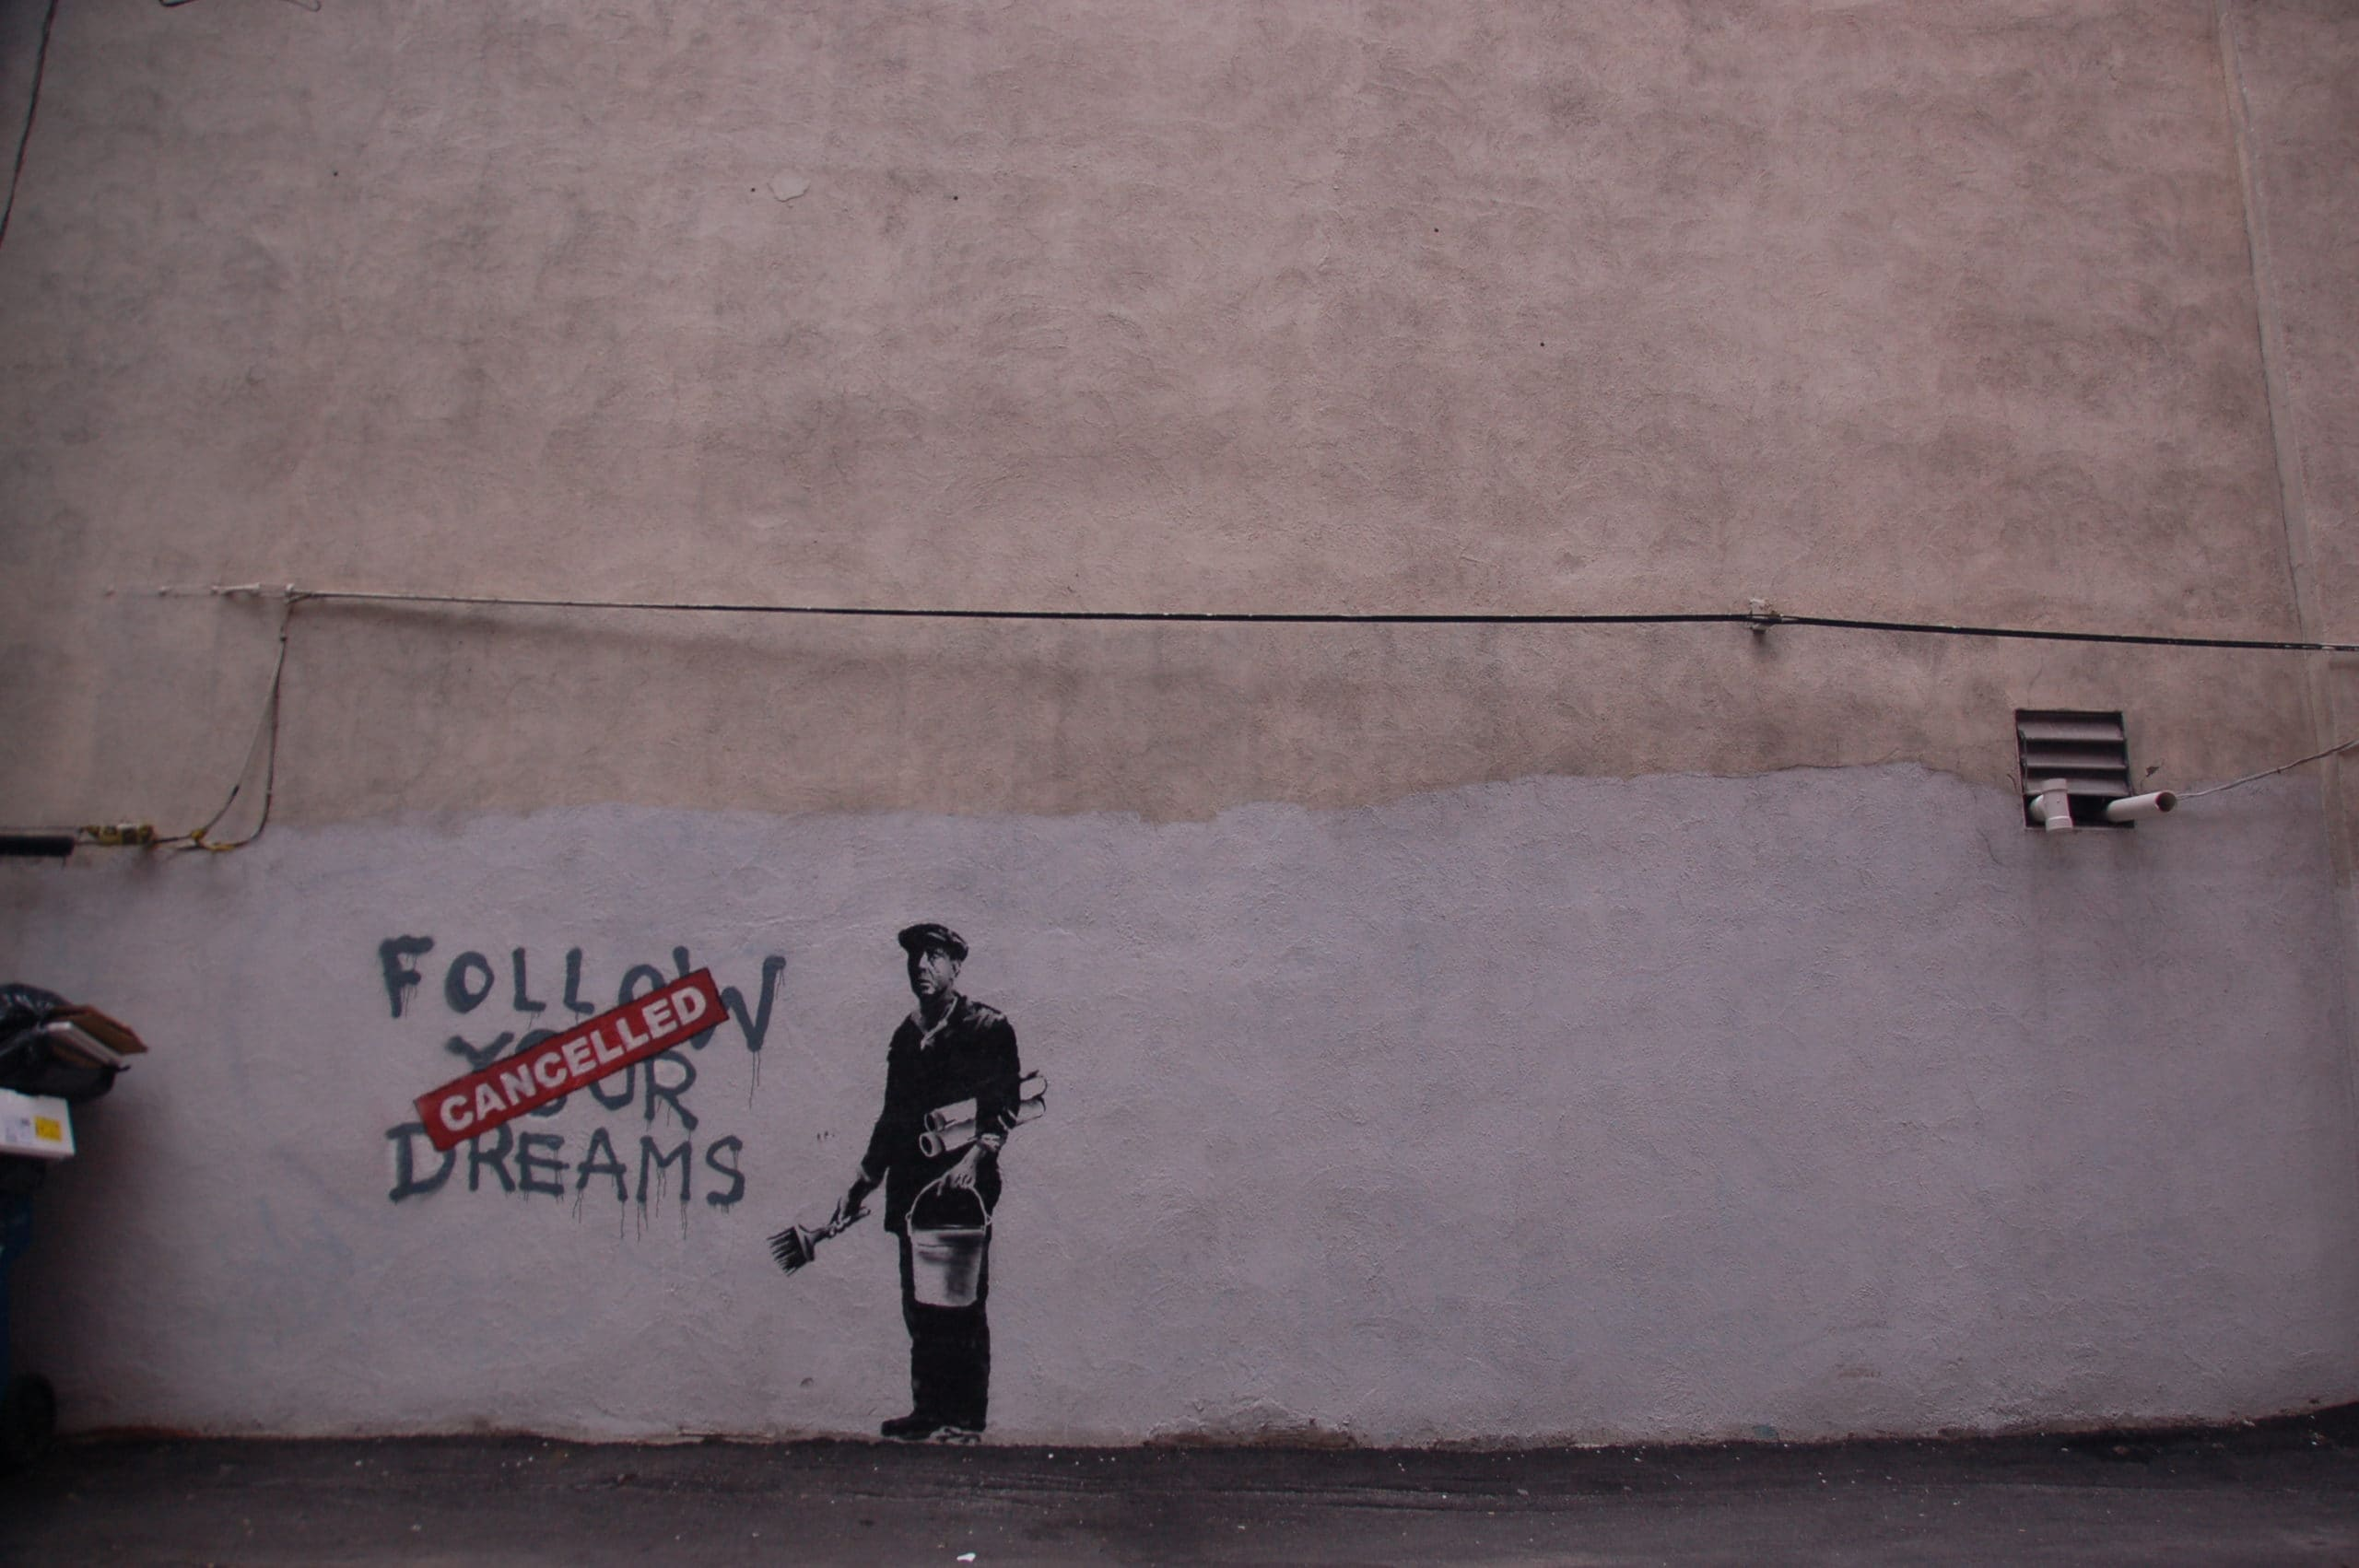 A grafiti Banksy style cancelling a follow your dream one